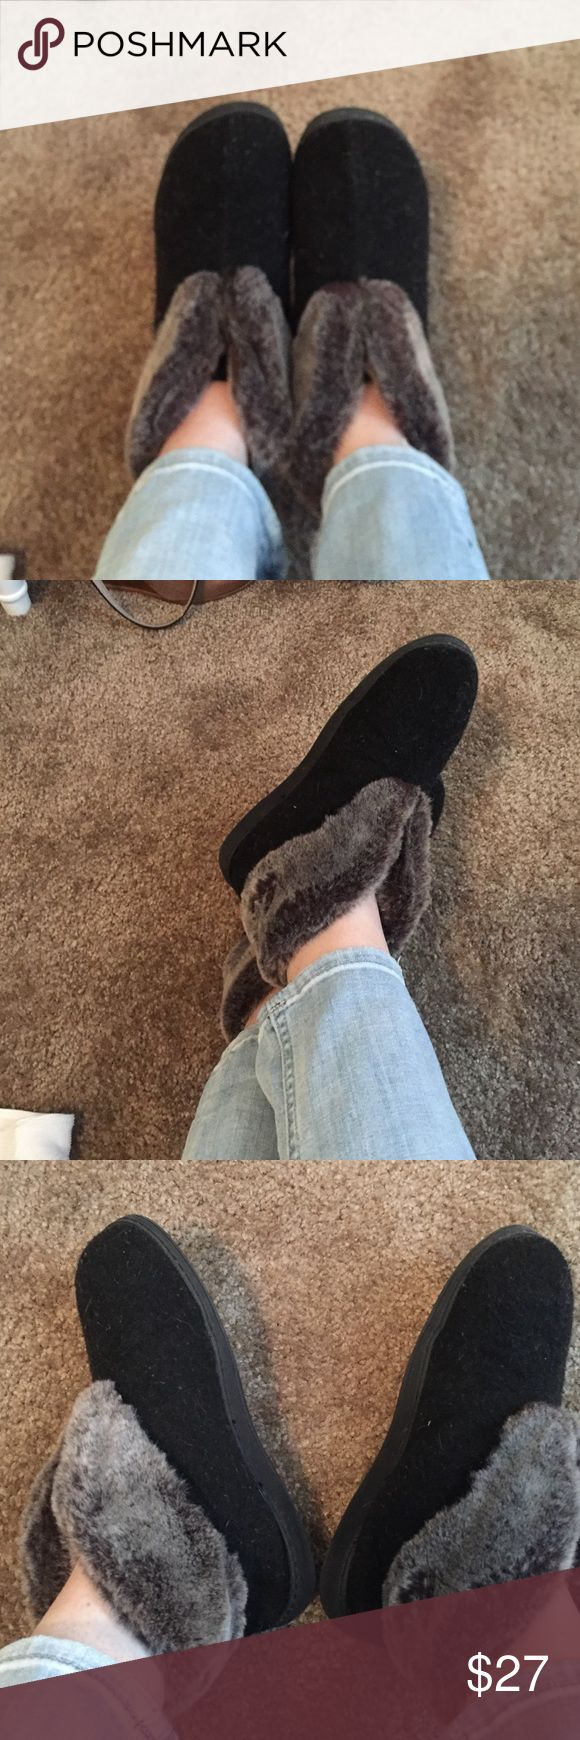 Acorn Earth Faux Fur Slipper These are sooo warm and high quality. I can't wear them in the 🌵 desert weather here. Cute as house shoes, durable and will last for several years. Very comfortable and fits a 6.5-7.5. Offers are welcome and bundling available as well! Acorn Shoes Slippers